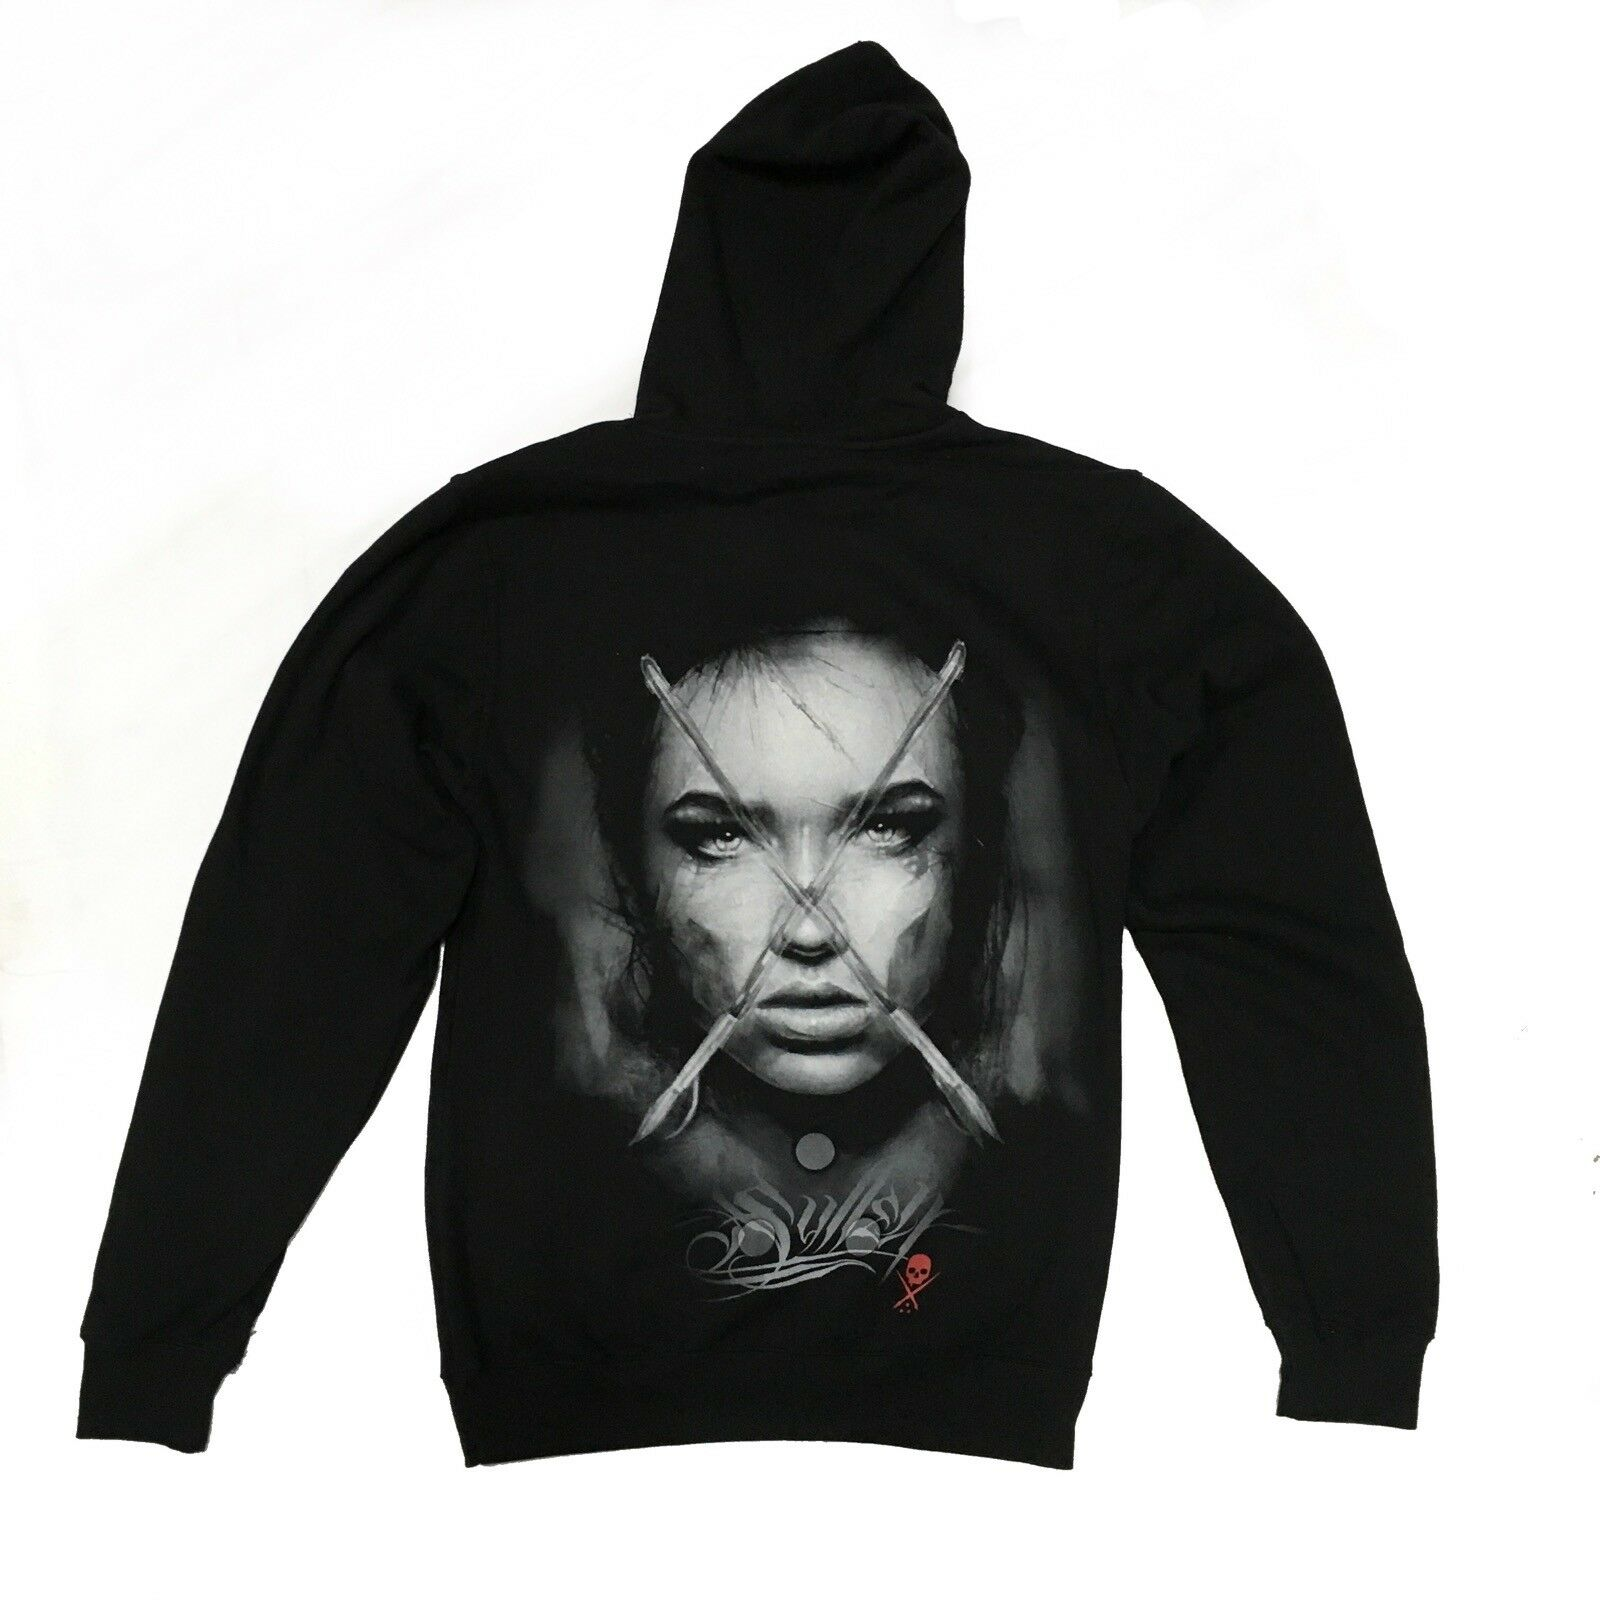 SULLEN CLOTHING CONNOLLY CONNOLLY CONNOLLY HOODIE (S) 3454f0